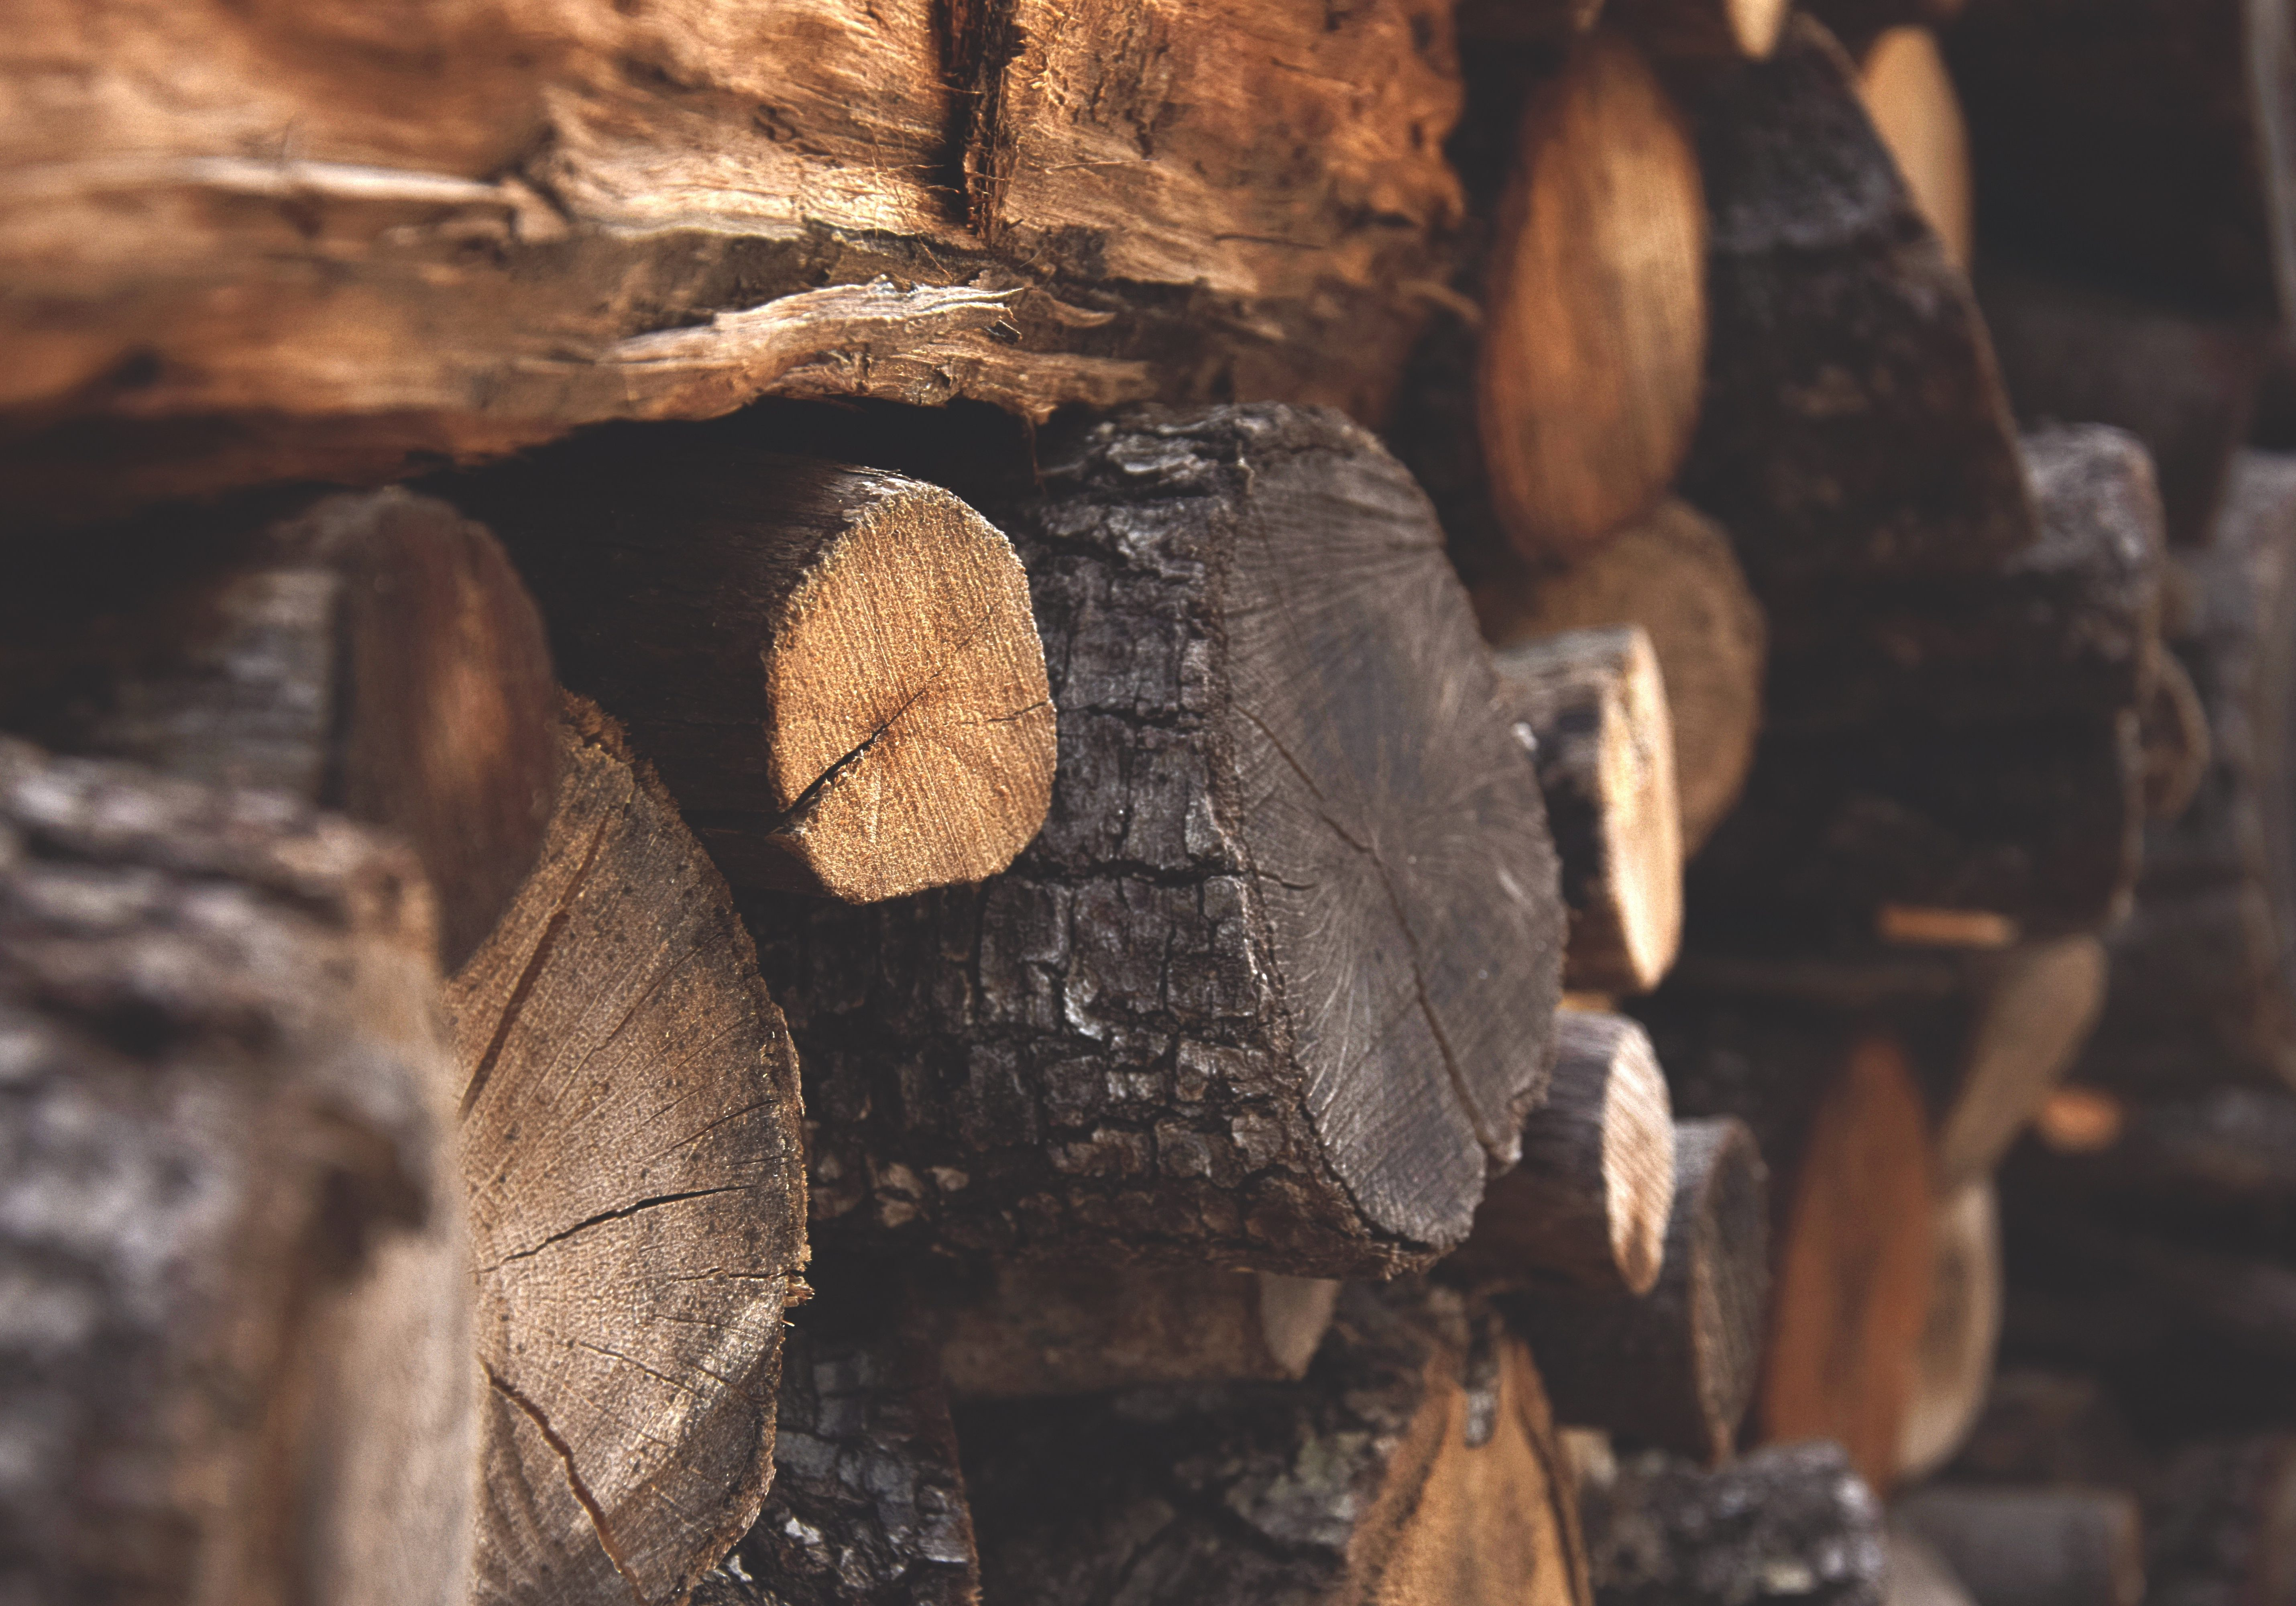 bark-chopped-wood-dark-122588